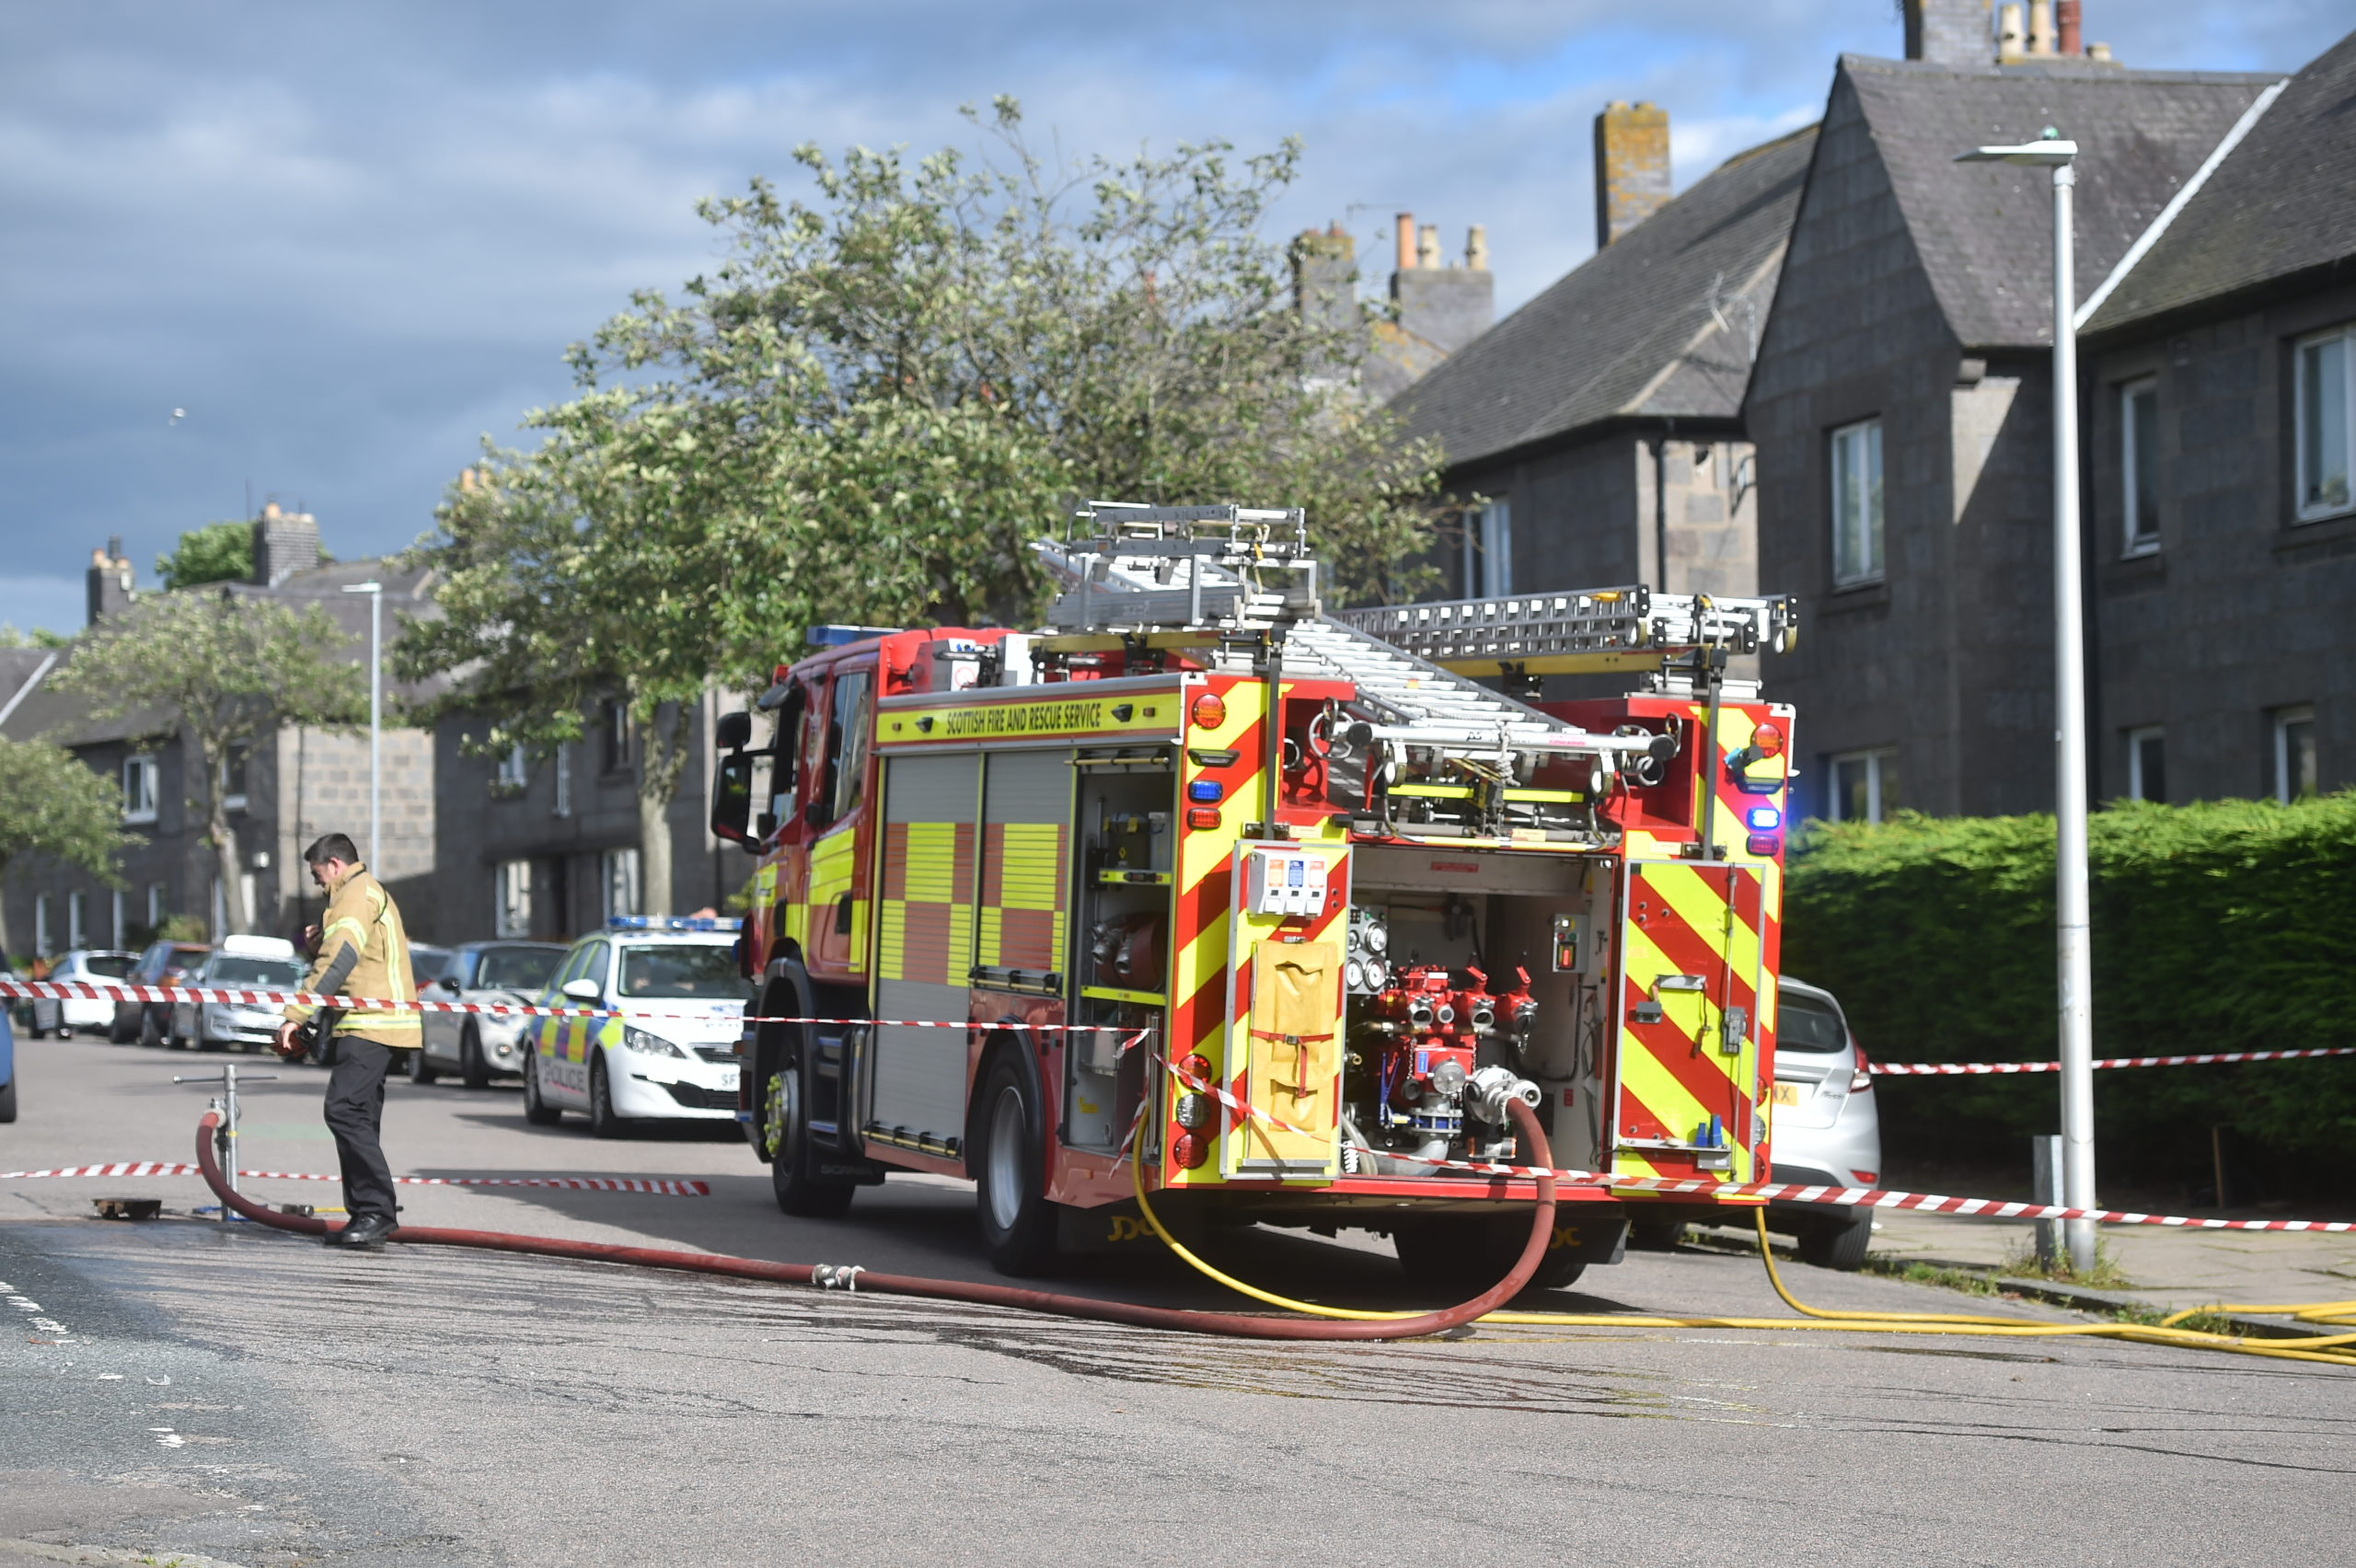 Fire engines at the scene on Polwarth Road, Torry.